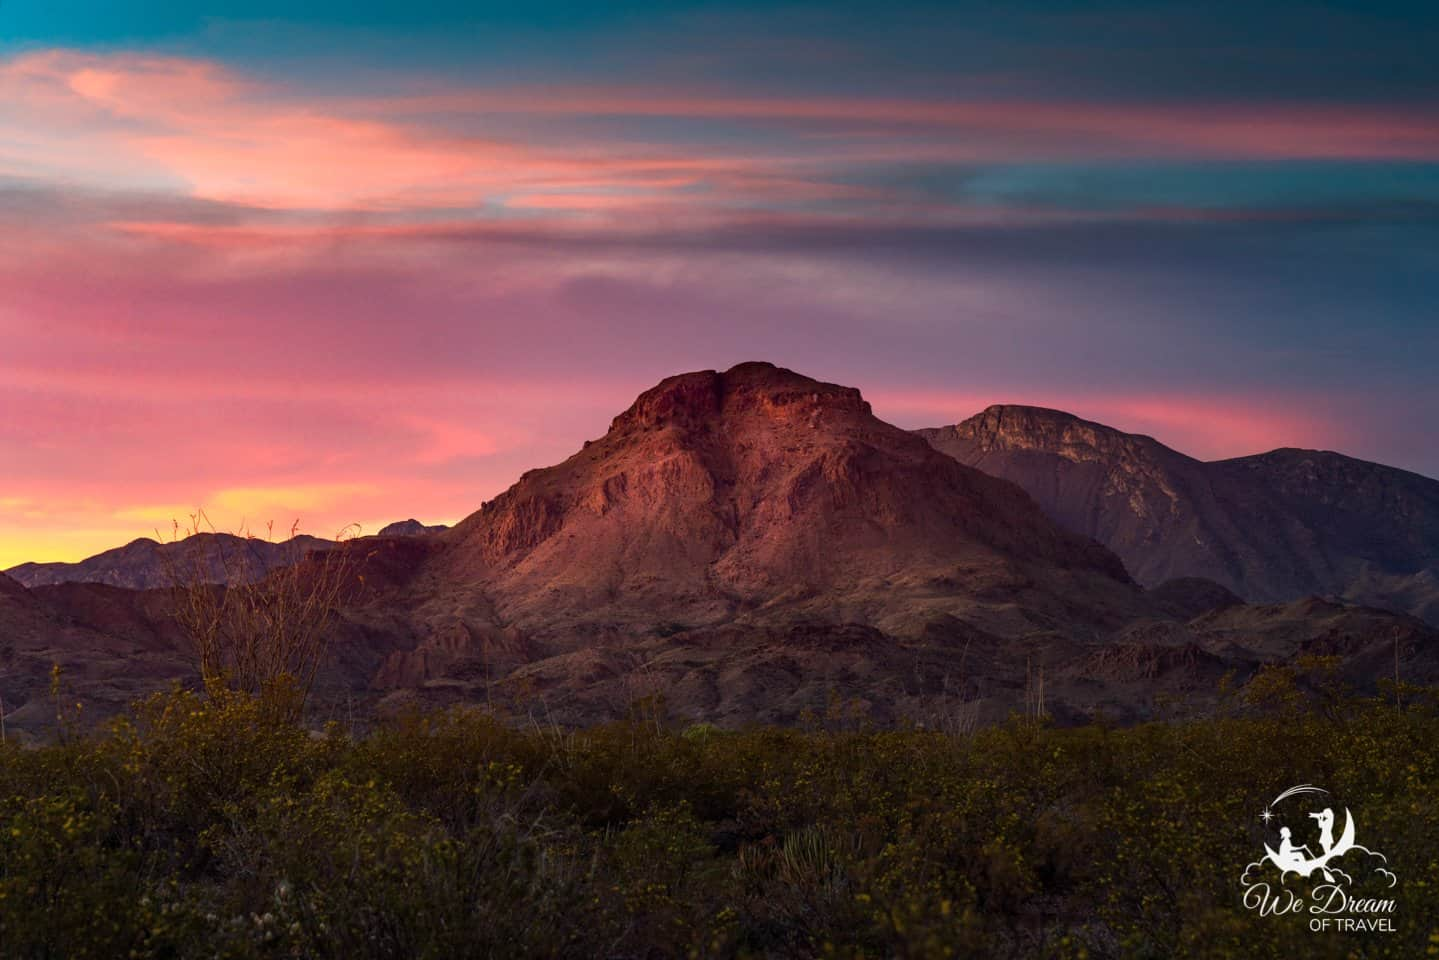 A spectacular sunset in Big Bend National Park.